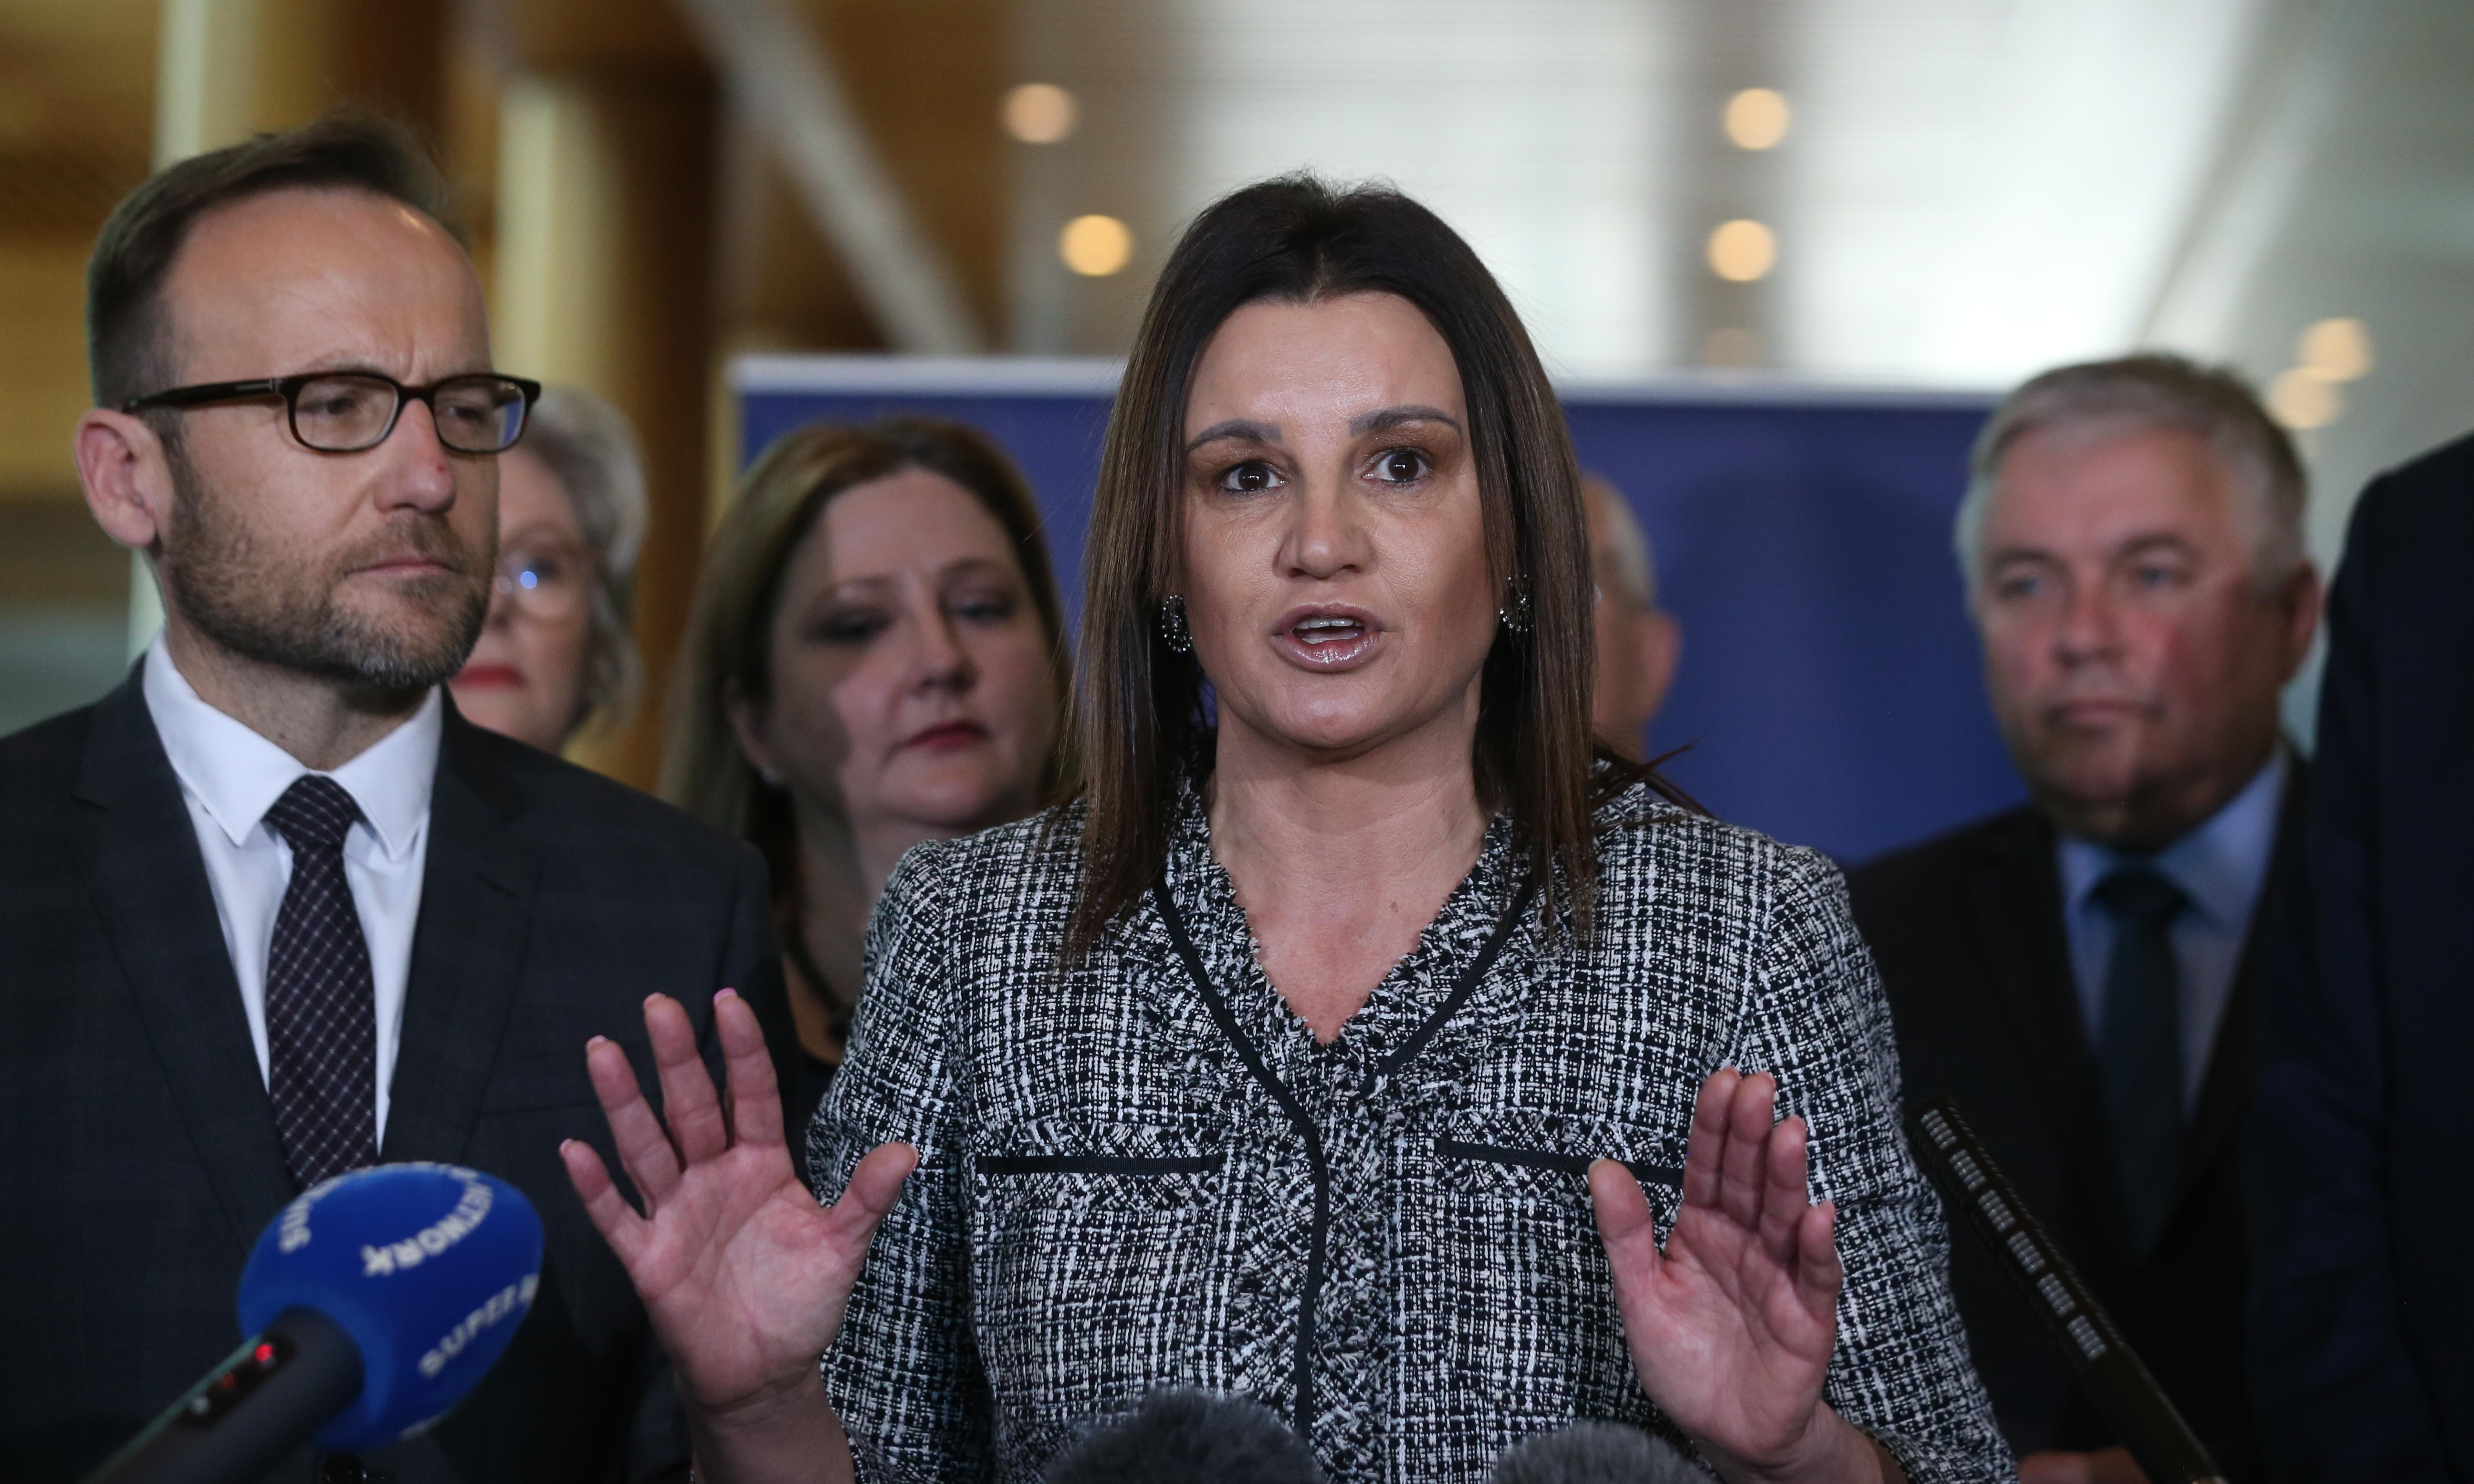 Medevac repeal bill: Jacqui Lambie warns Coalition against fast-tracking vote